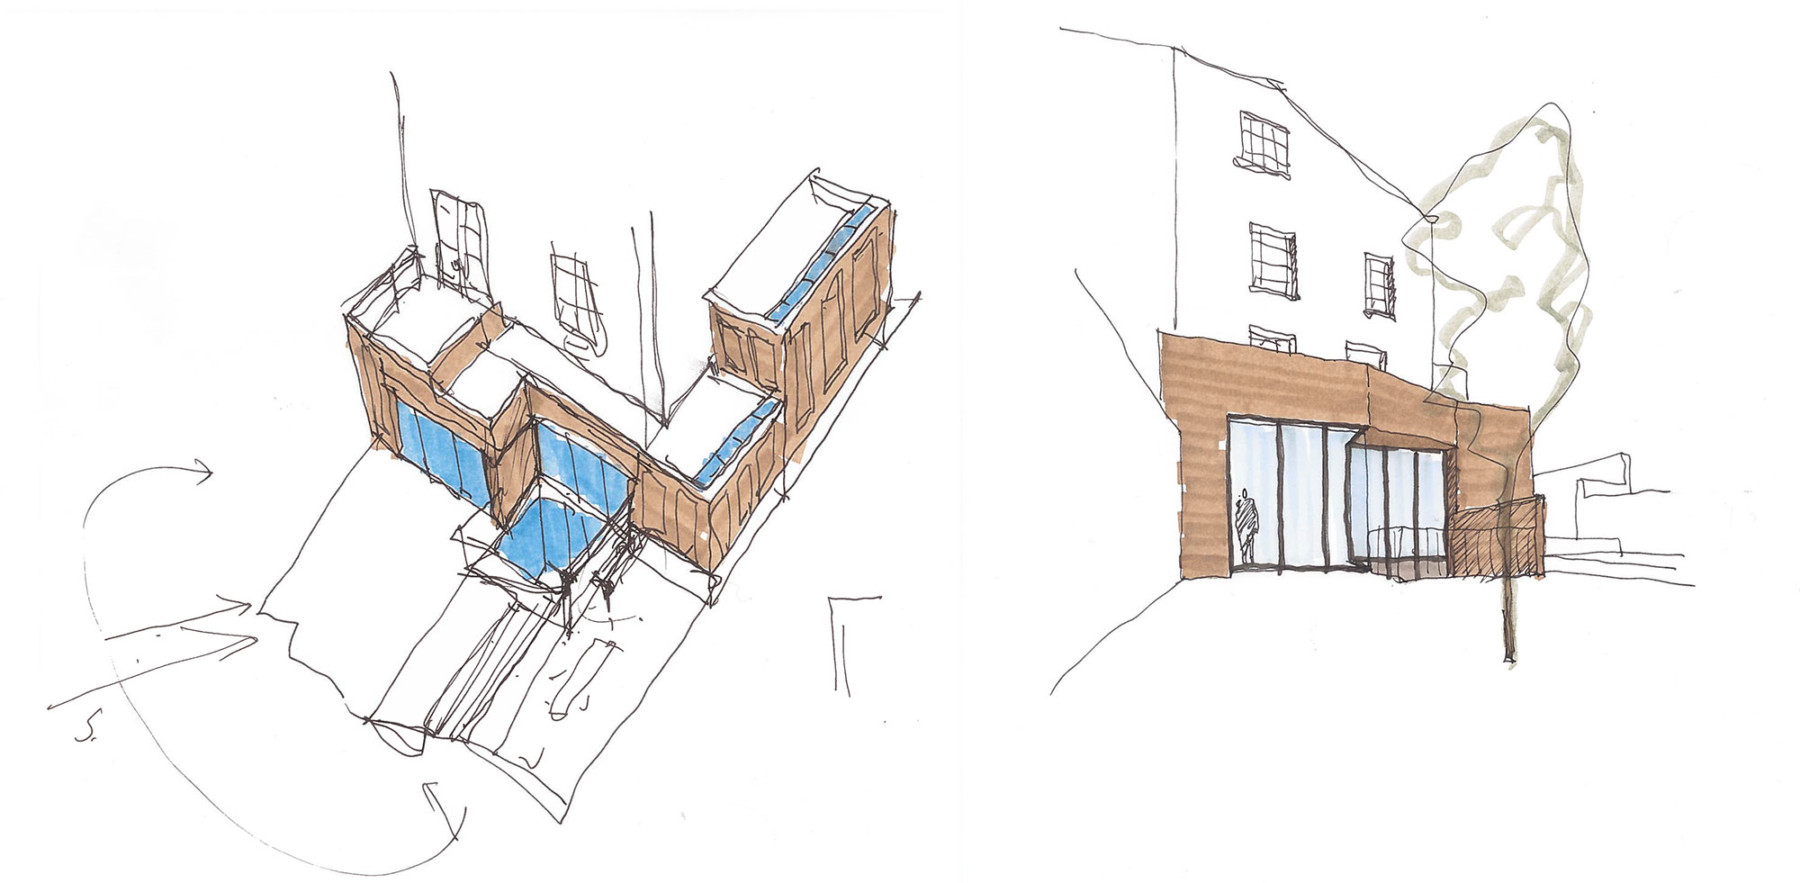 Jamie-fobert-architects-house-in-primrose-hill-exterior-sketches